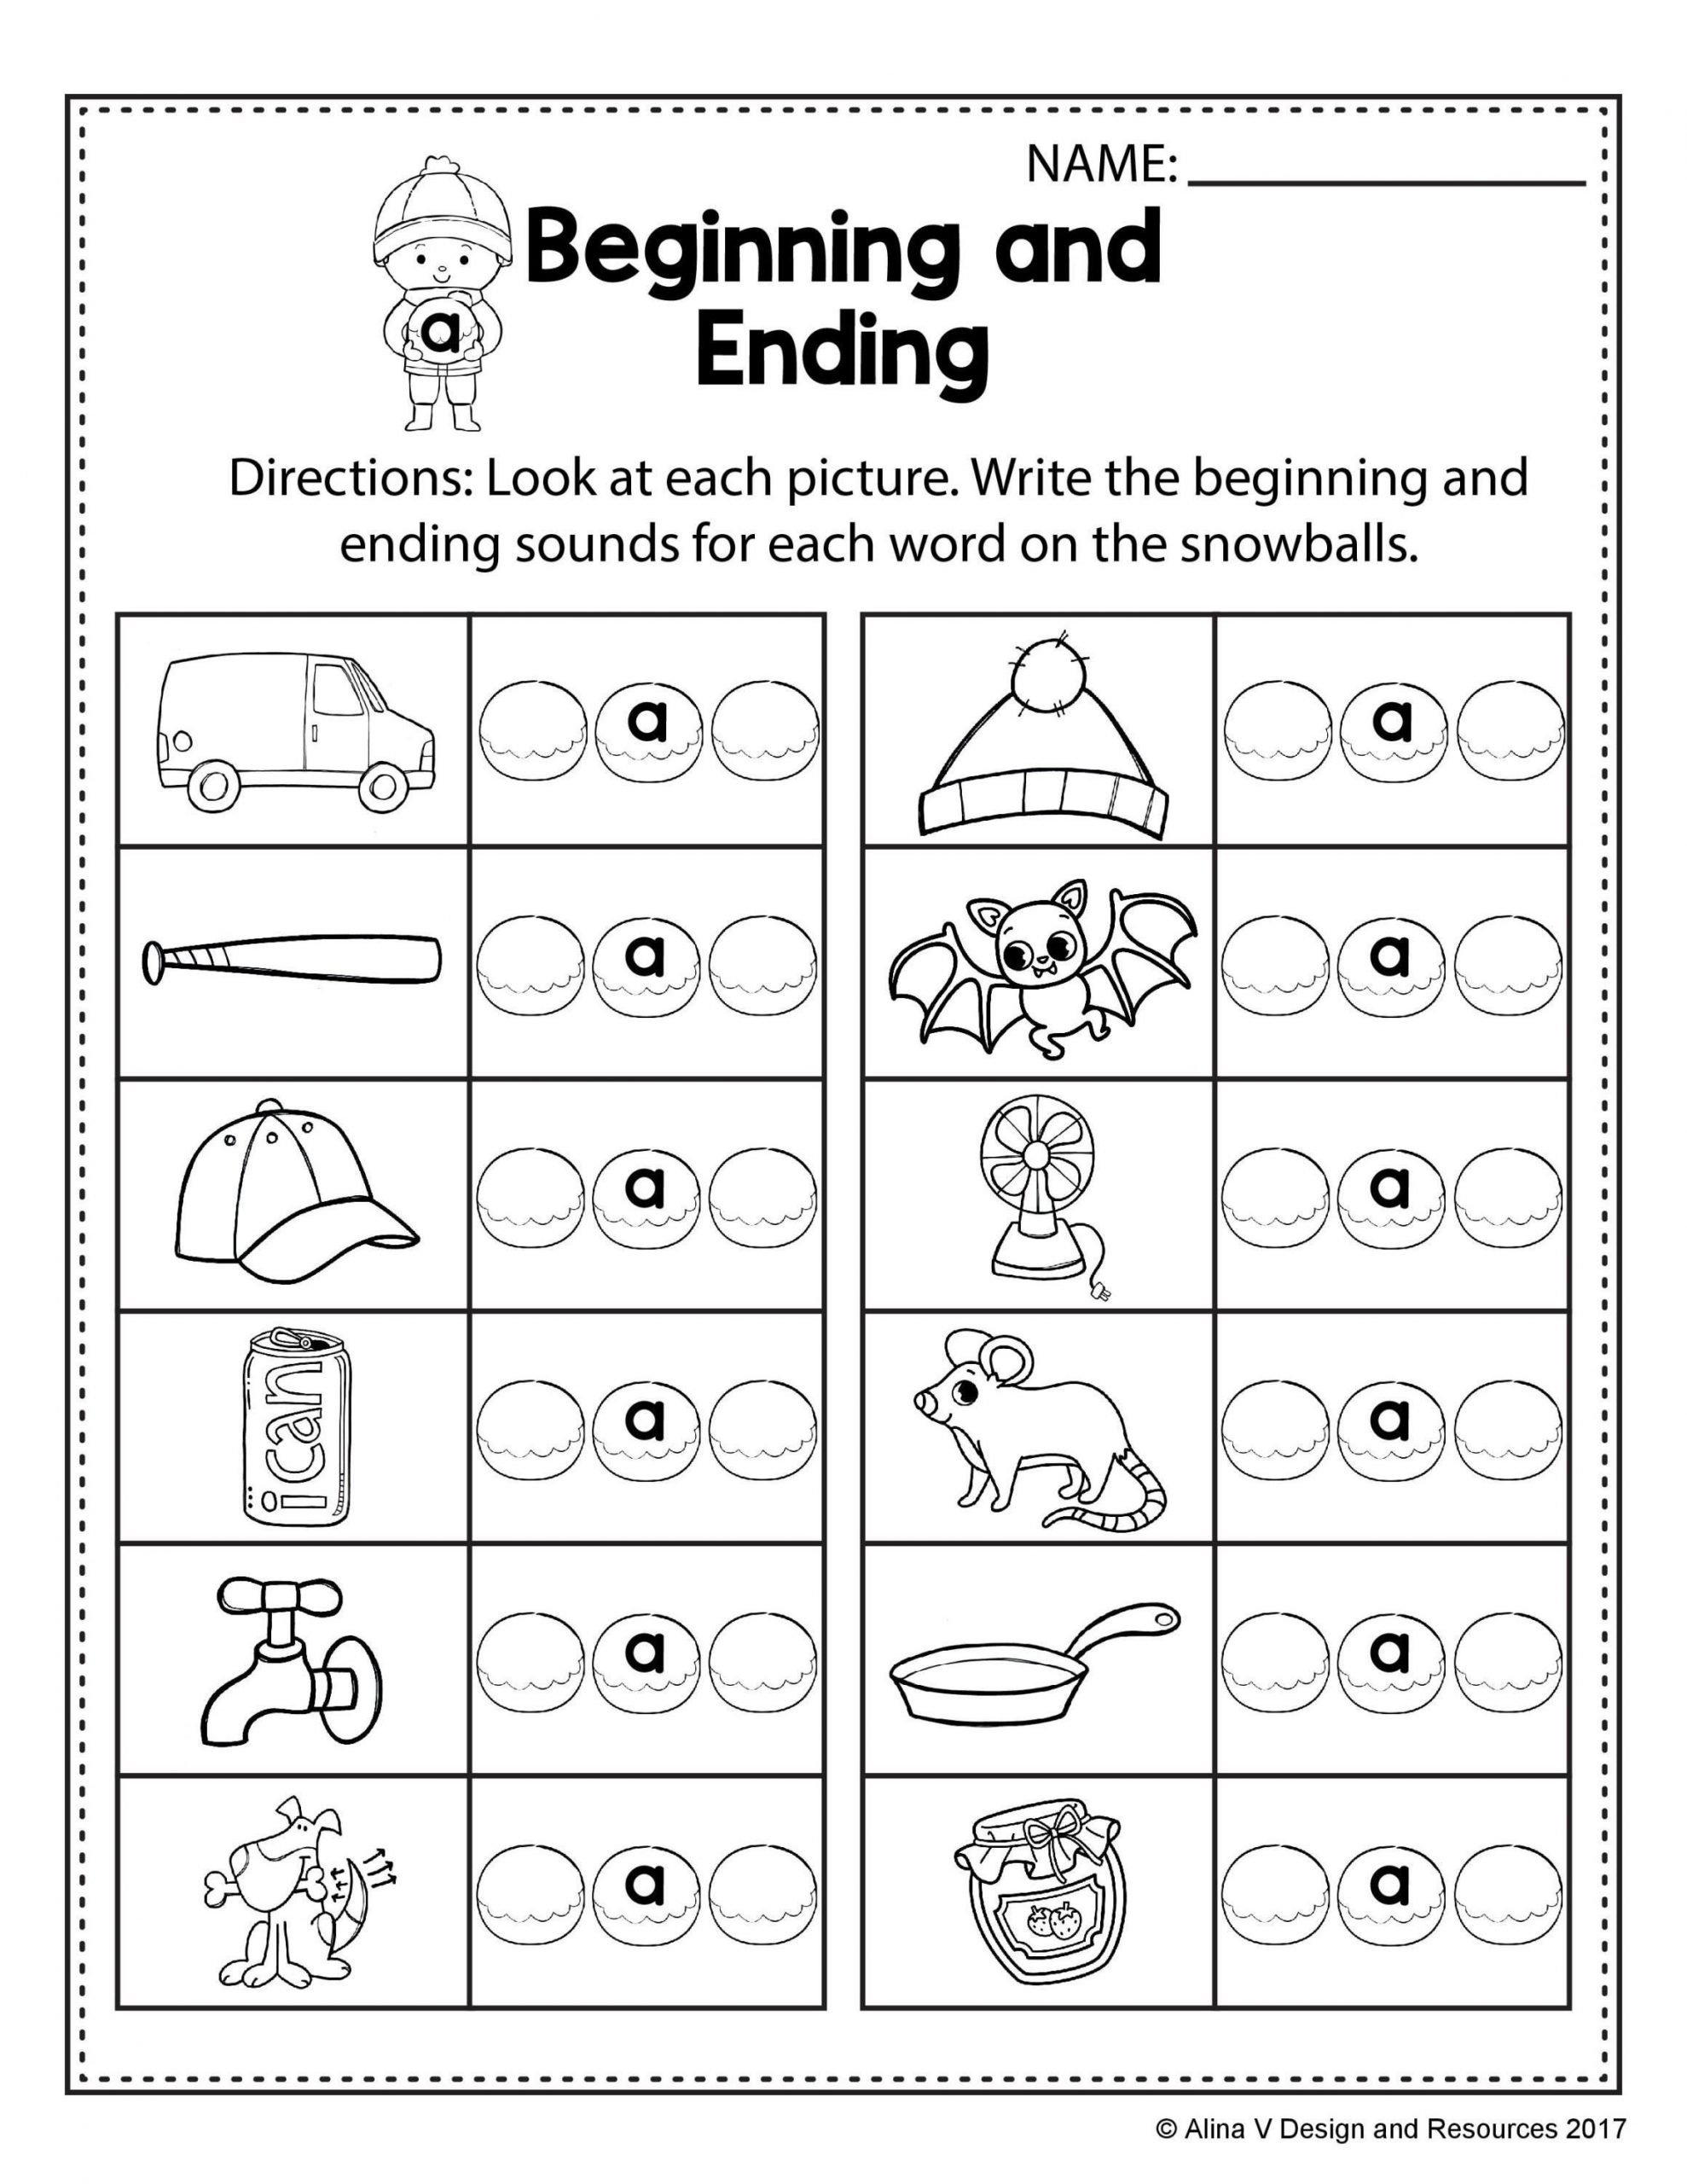 Beginning and Ending sounds Worksheet Ending sounds Worksheet